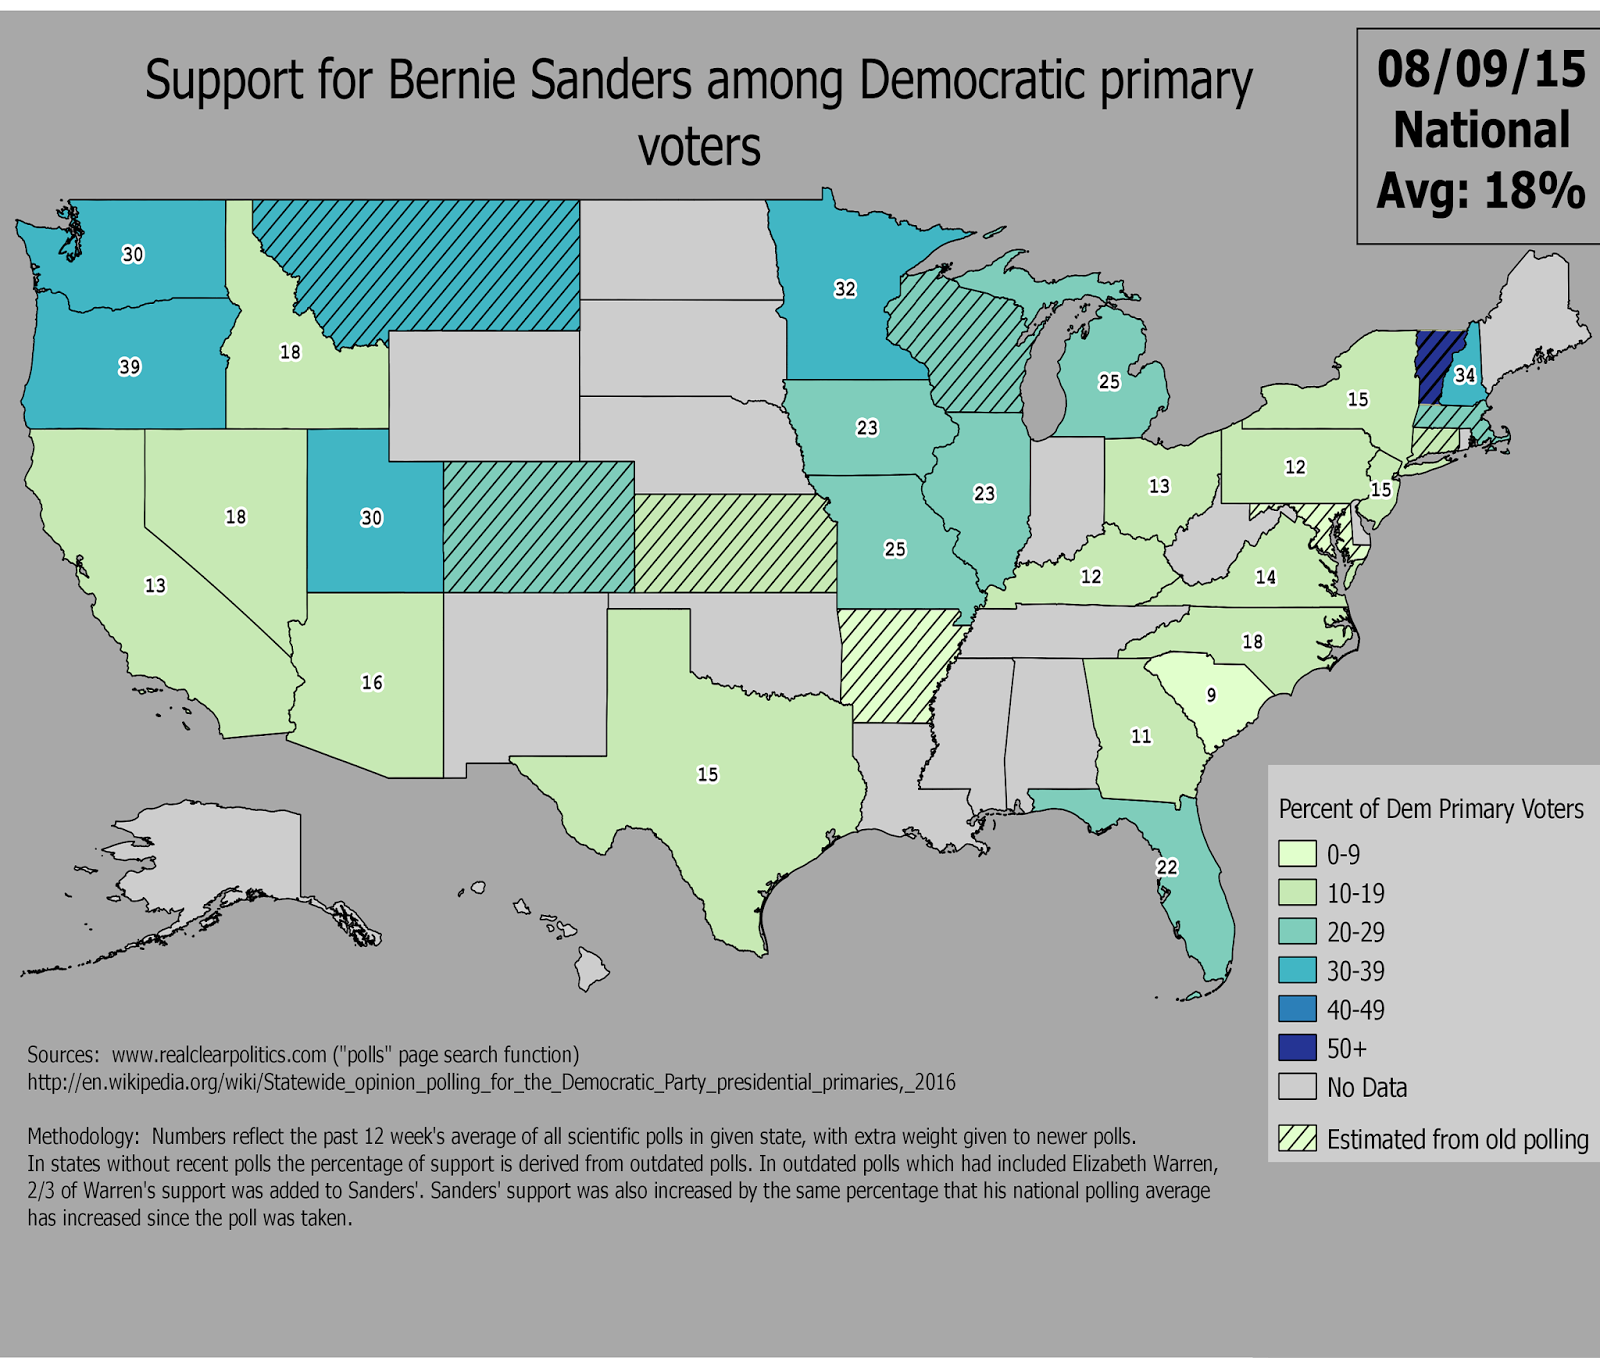 support for bernie sanders among democratic primary voters through 08 09